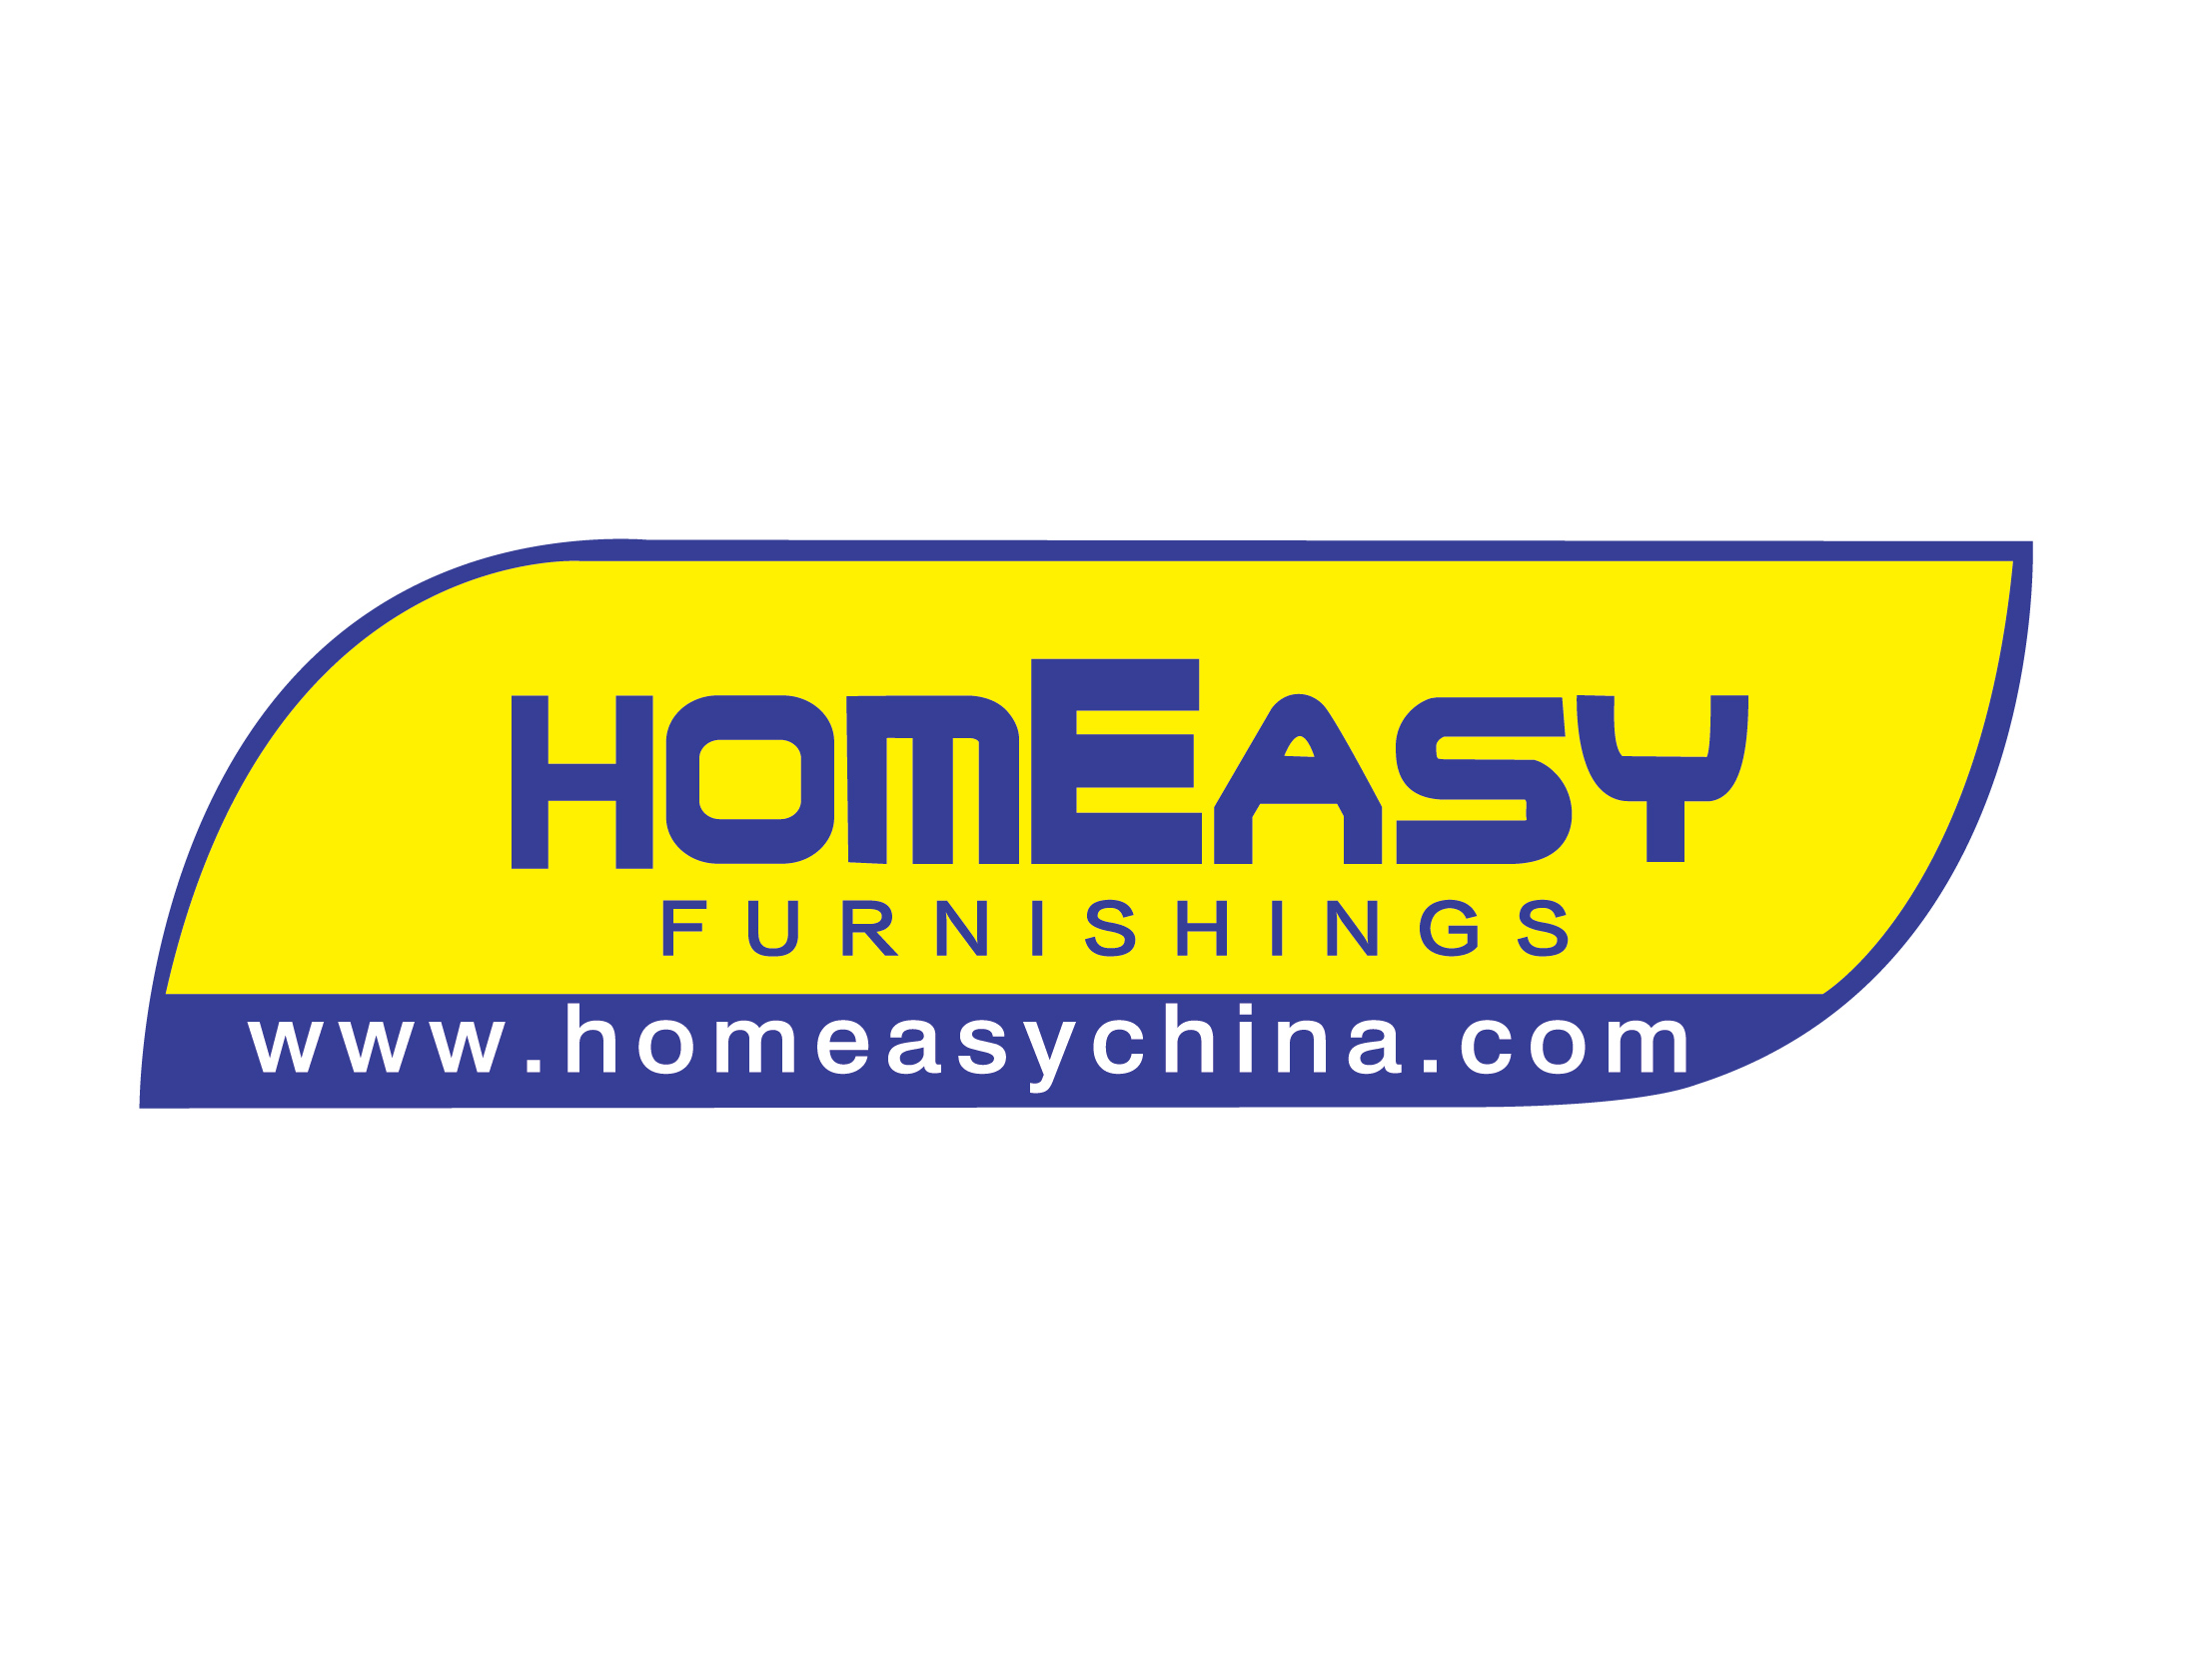 FUZHOU HOMEASY FURNISHINGS CO., LTD.